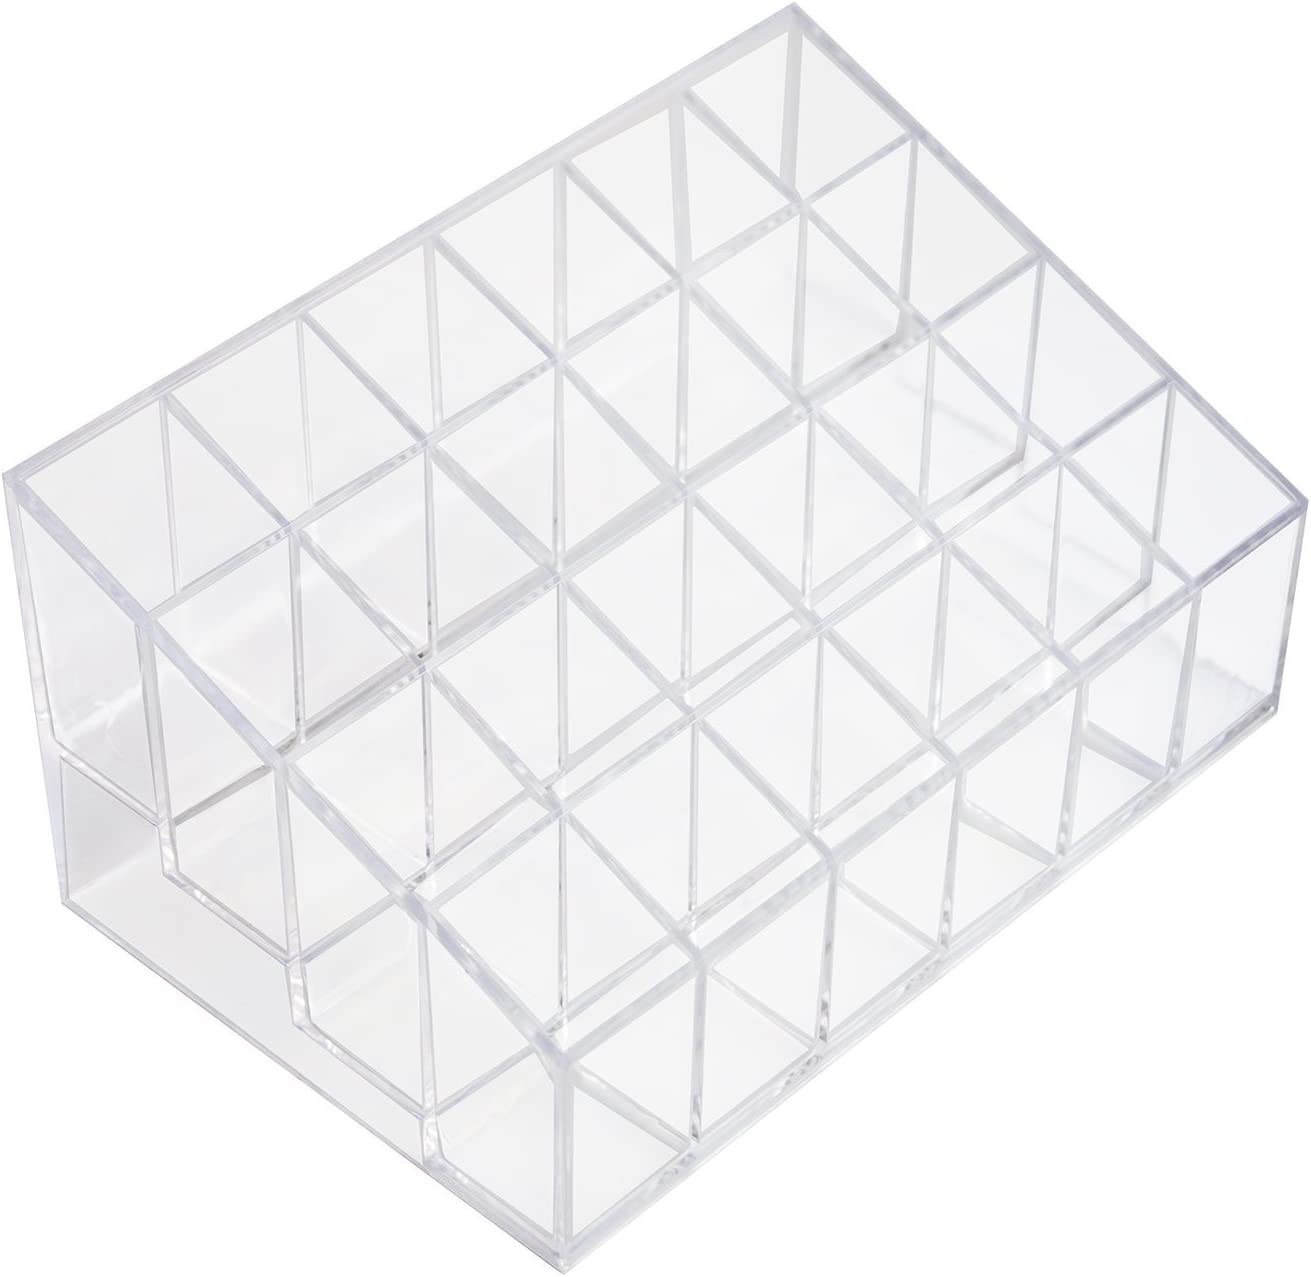 Transparent Cosmetic Makeup Organizer For Lipstick Brushes Bottles And More Clear Case Display Rack Holder Home Kitchen